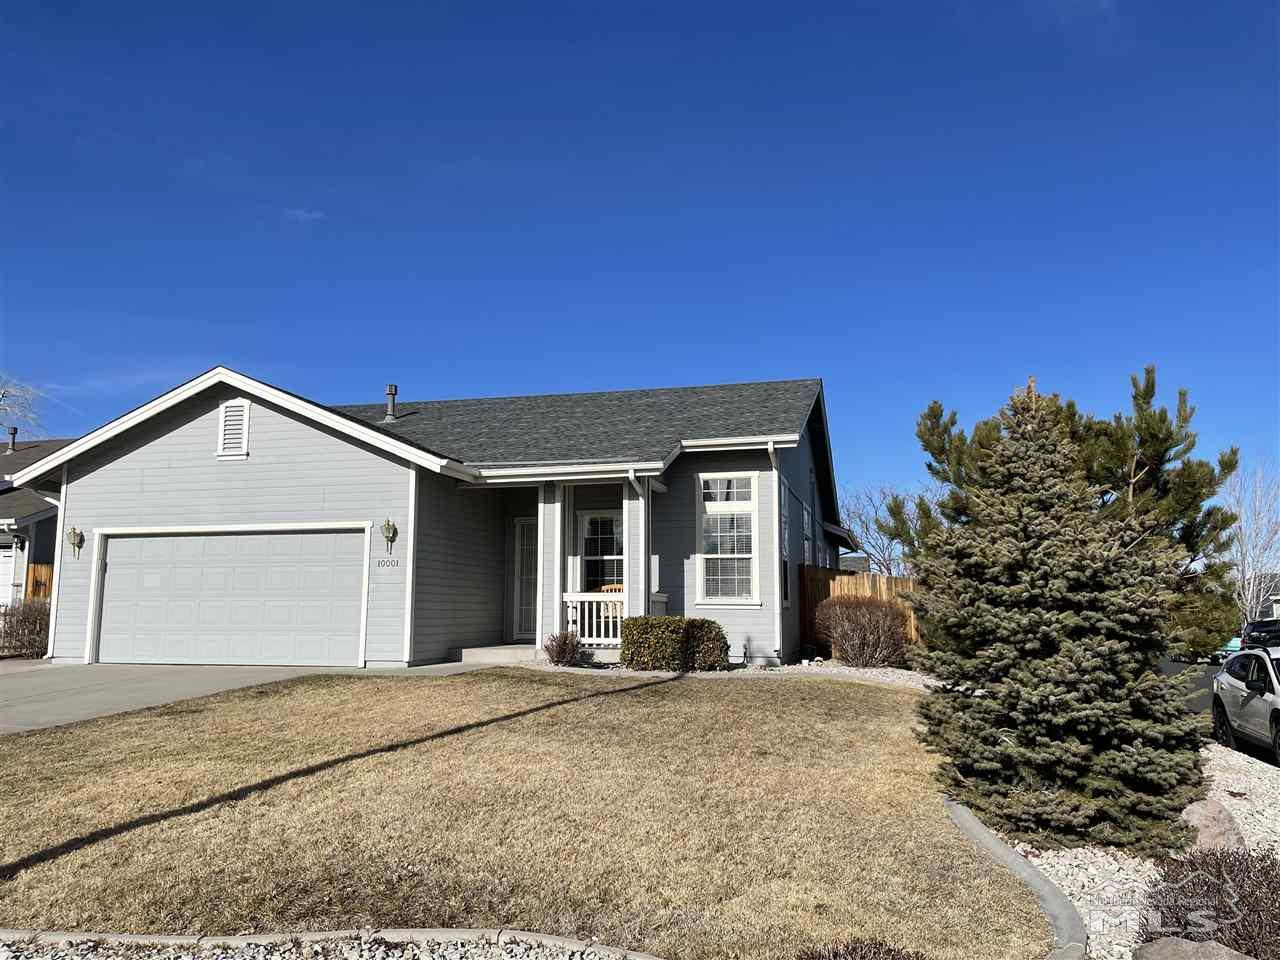 Image for 10001 Horse Creek Ct, Reno, NV 89506